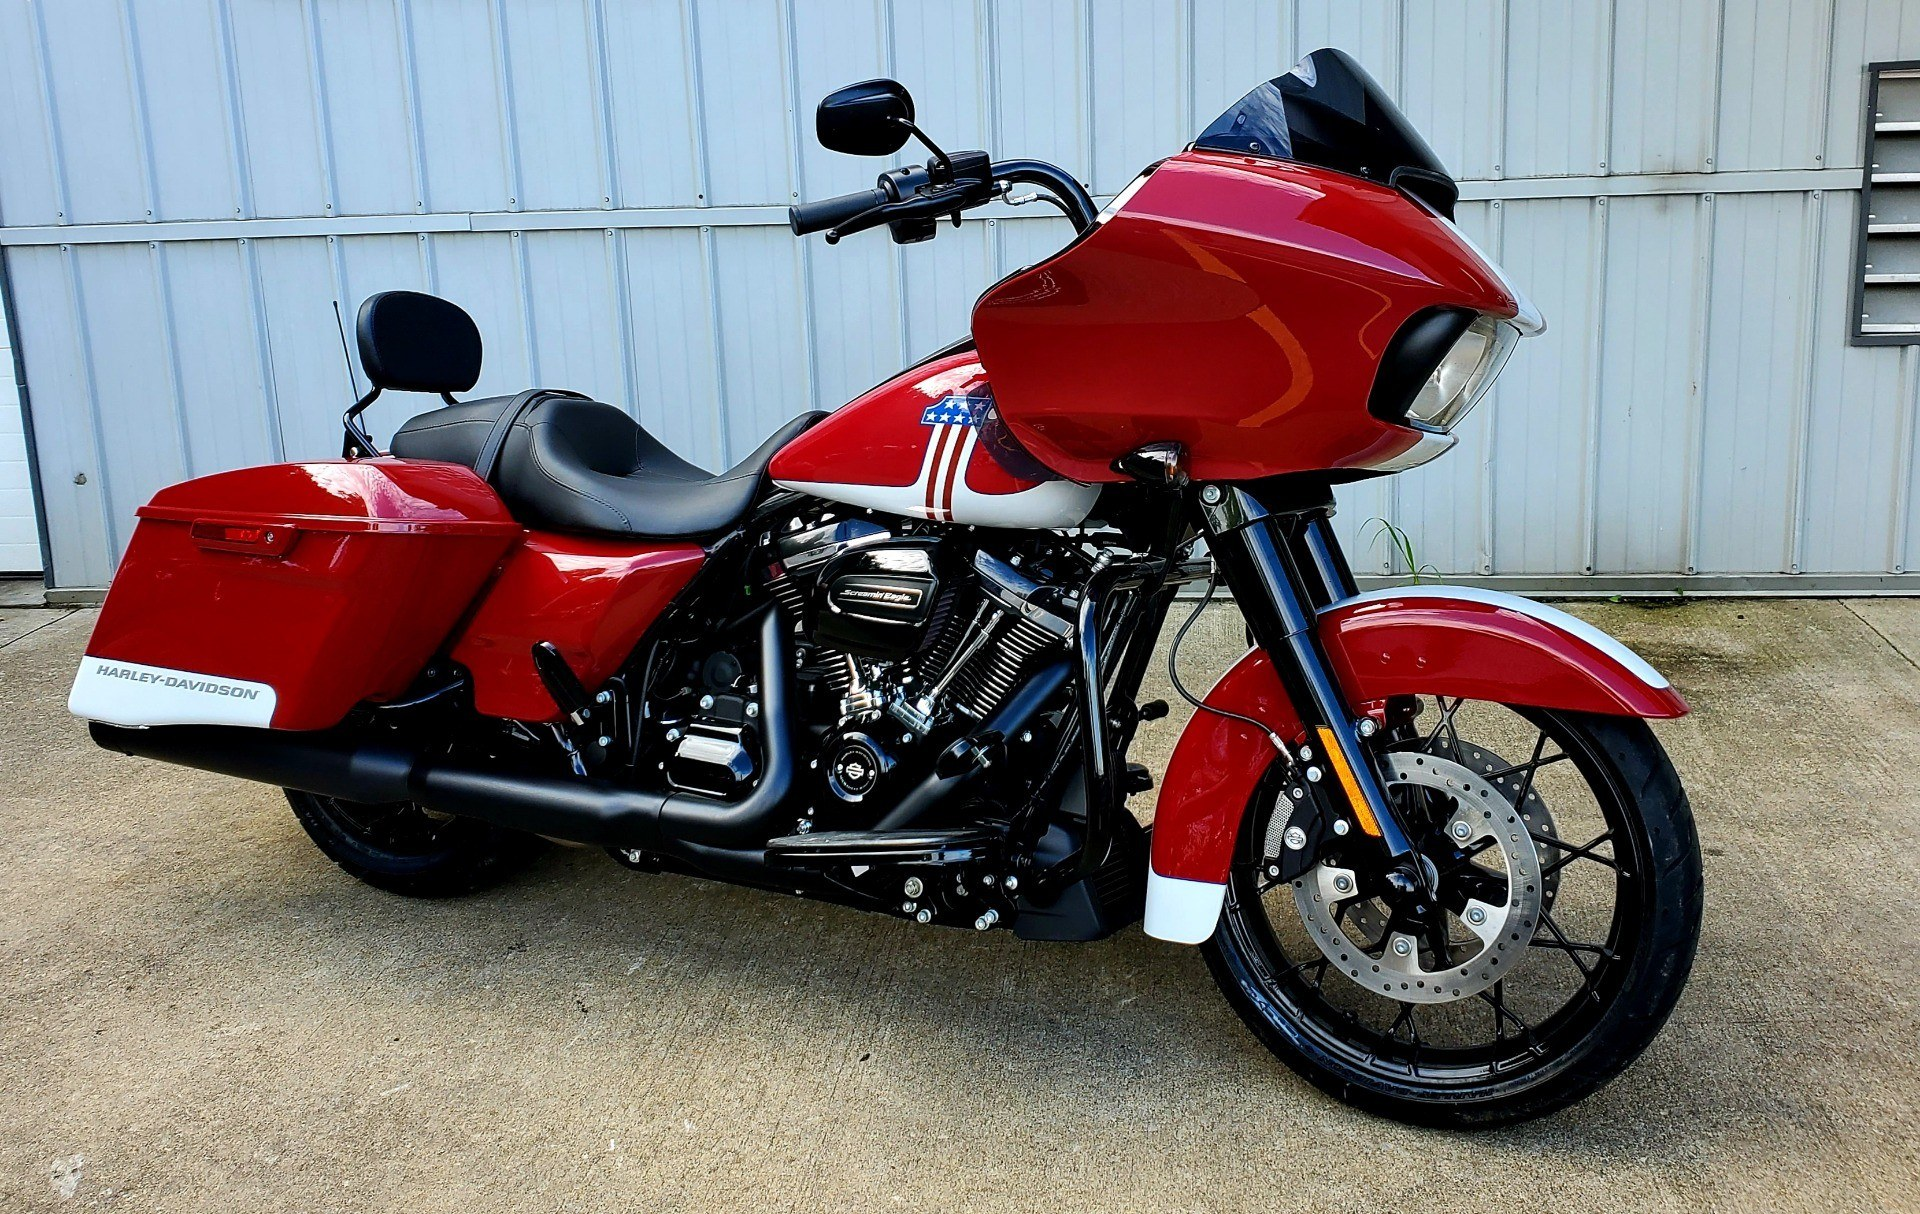 2020 Harley Davidson Road Glide Special Motorcycles Athens Ohio N A